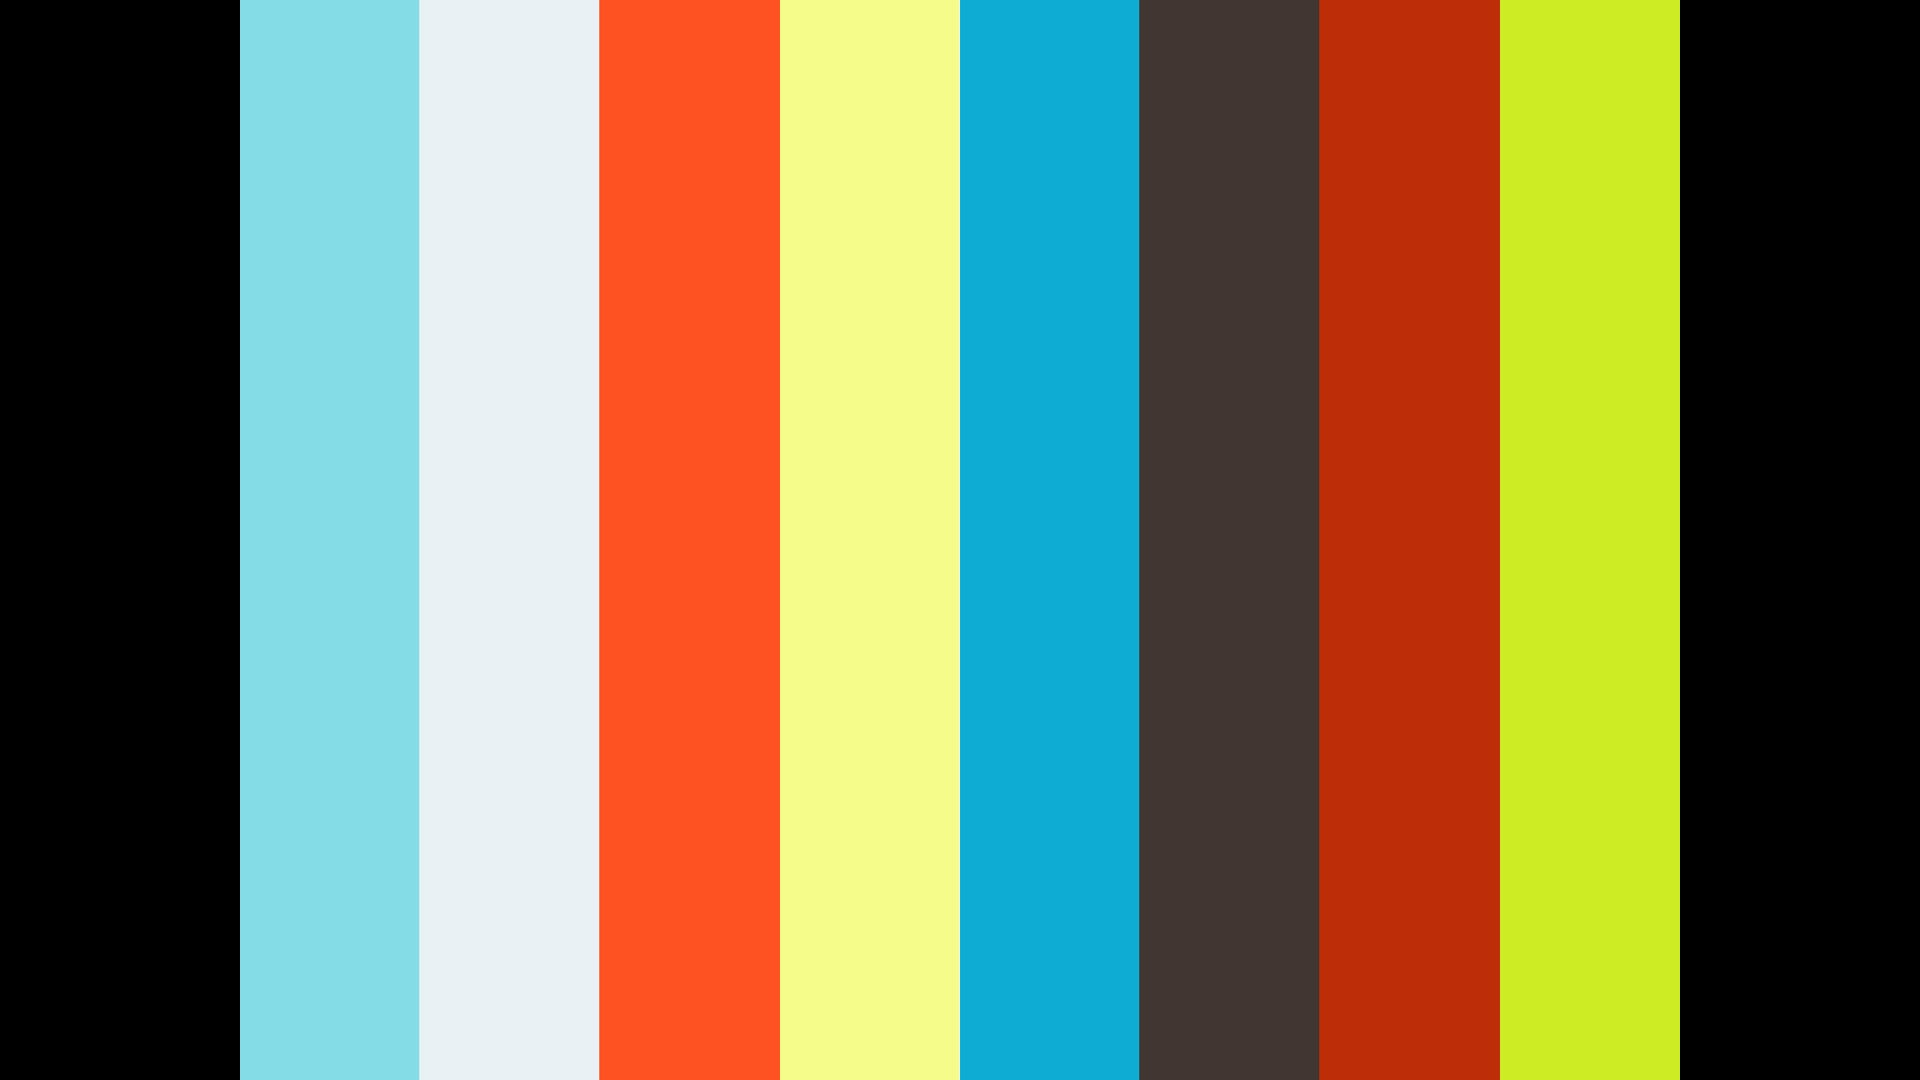 Kingdom - Jack of Hearts